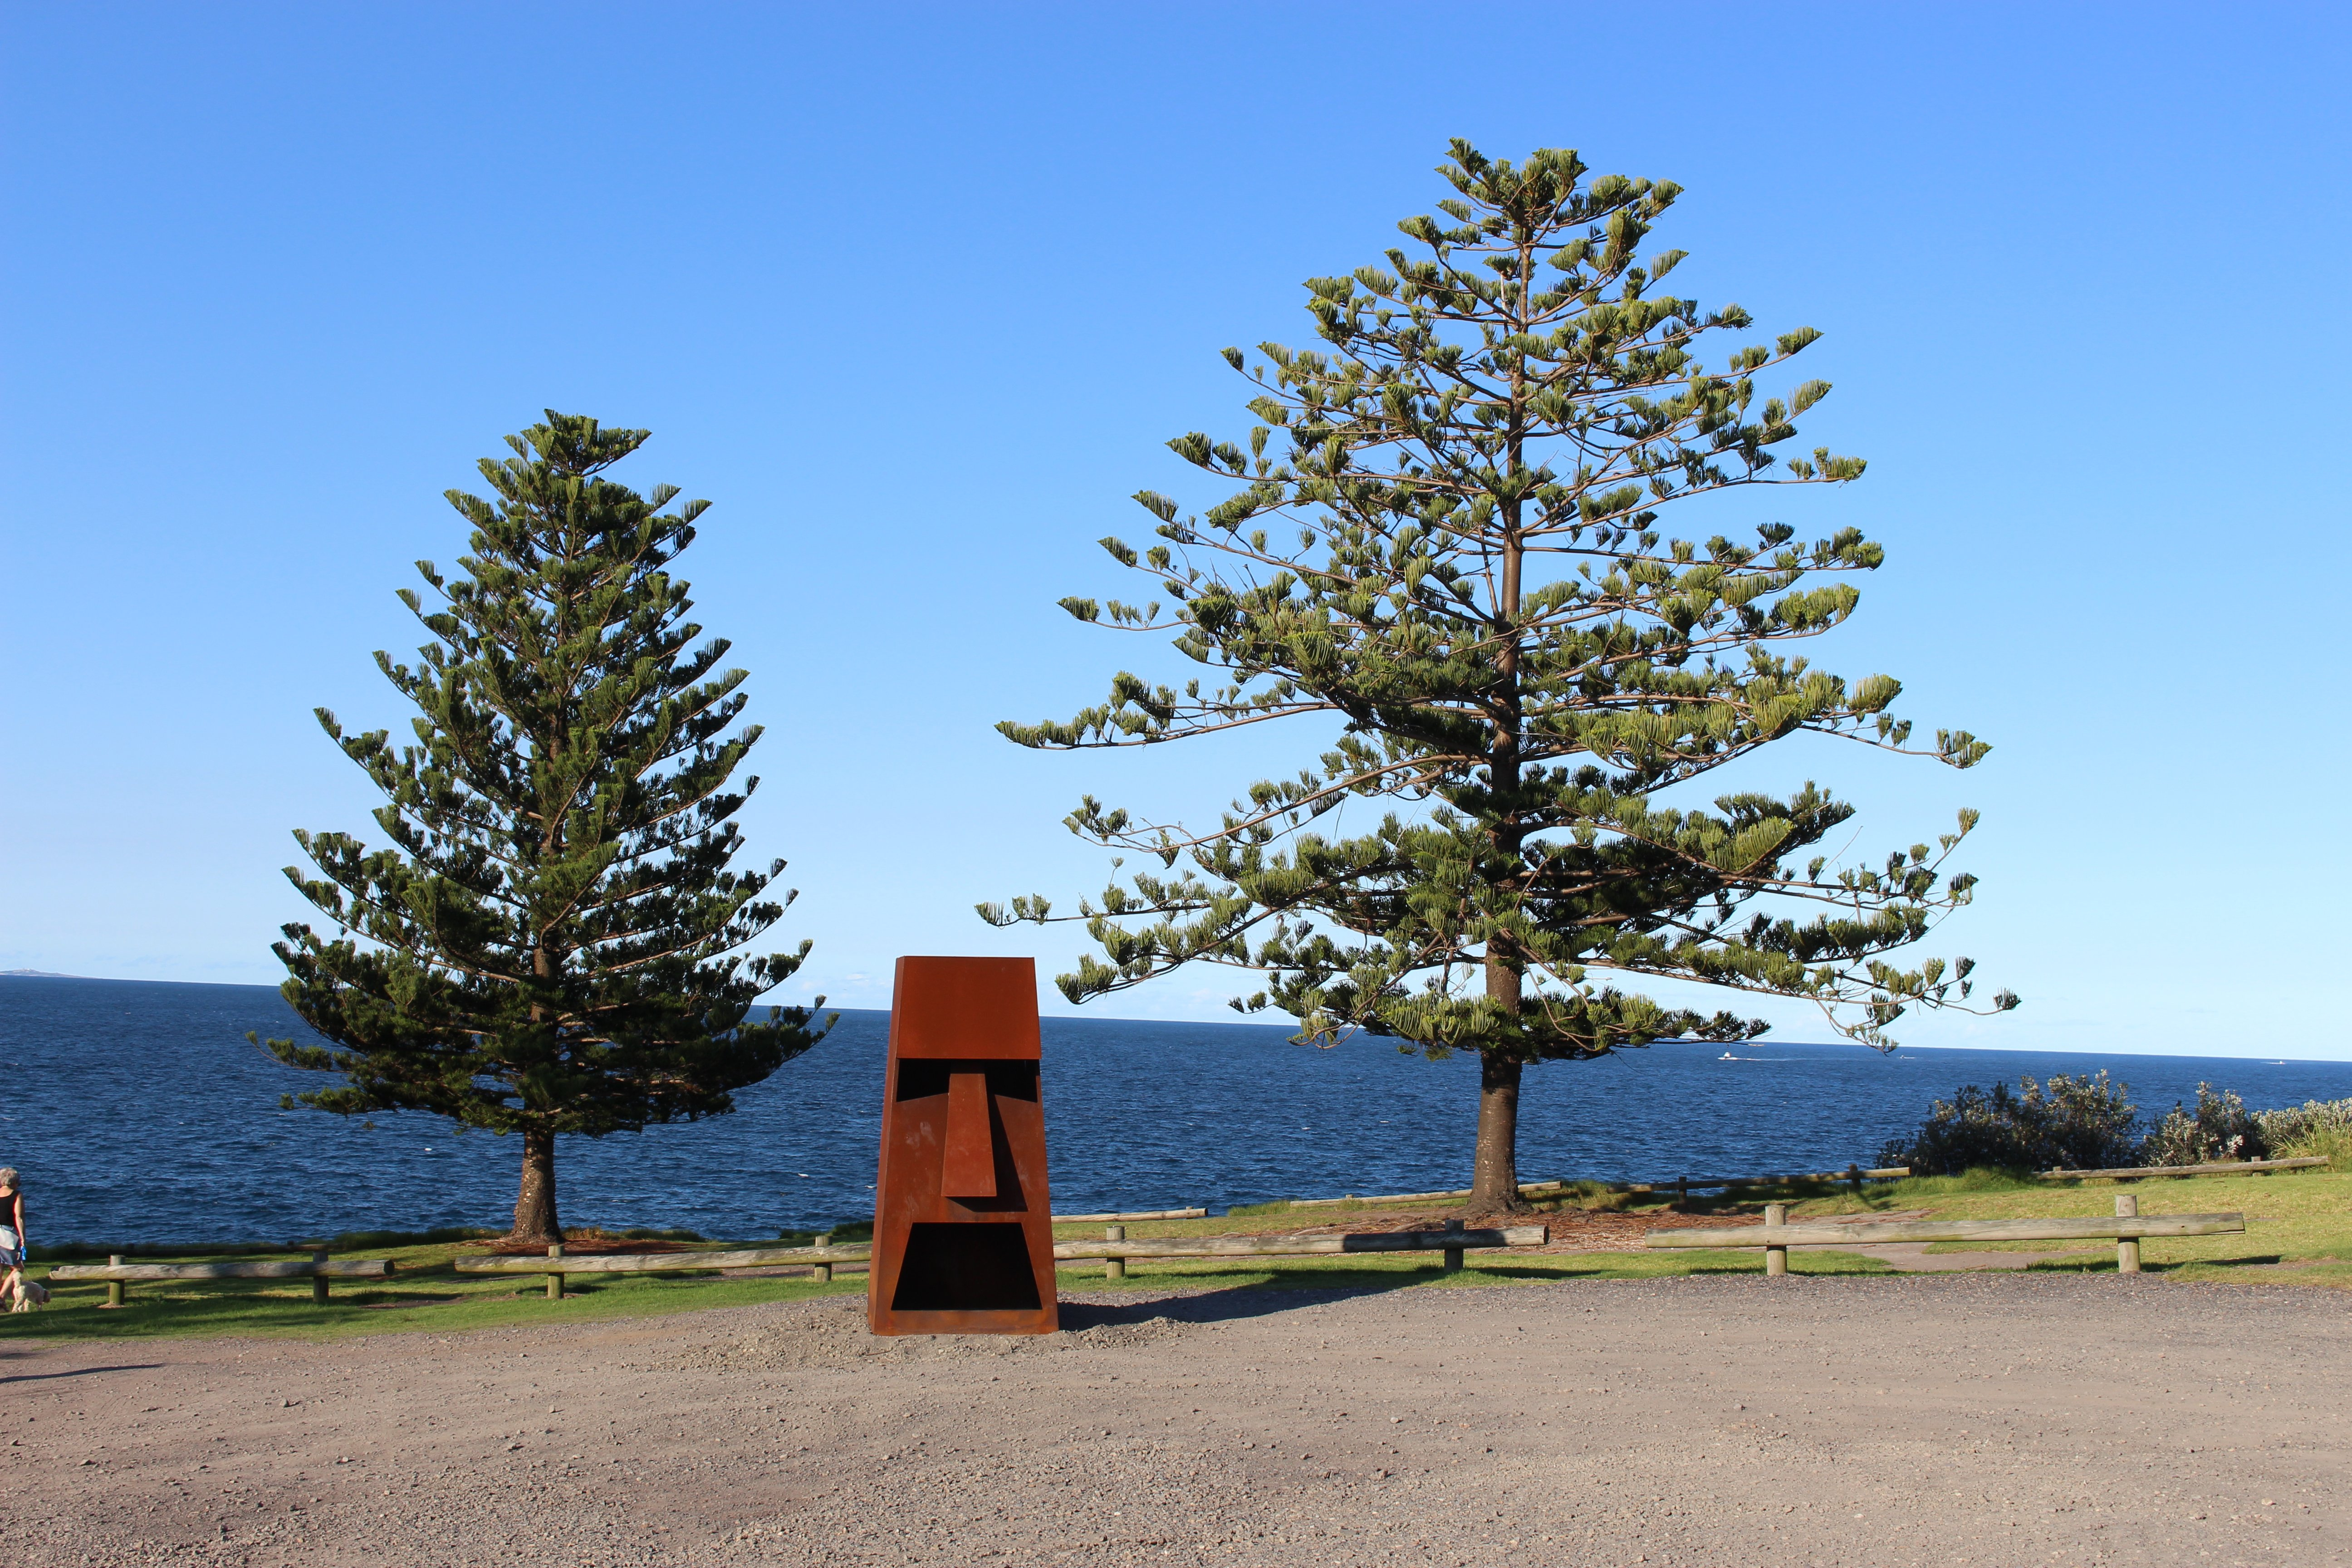 """Shannon Hobbs imposing fire sculpture """"Hot Head"""" sits at the end of the headland keeping watch. Photo: Ian Campbell."""